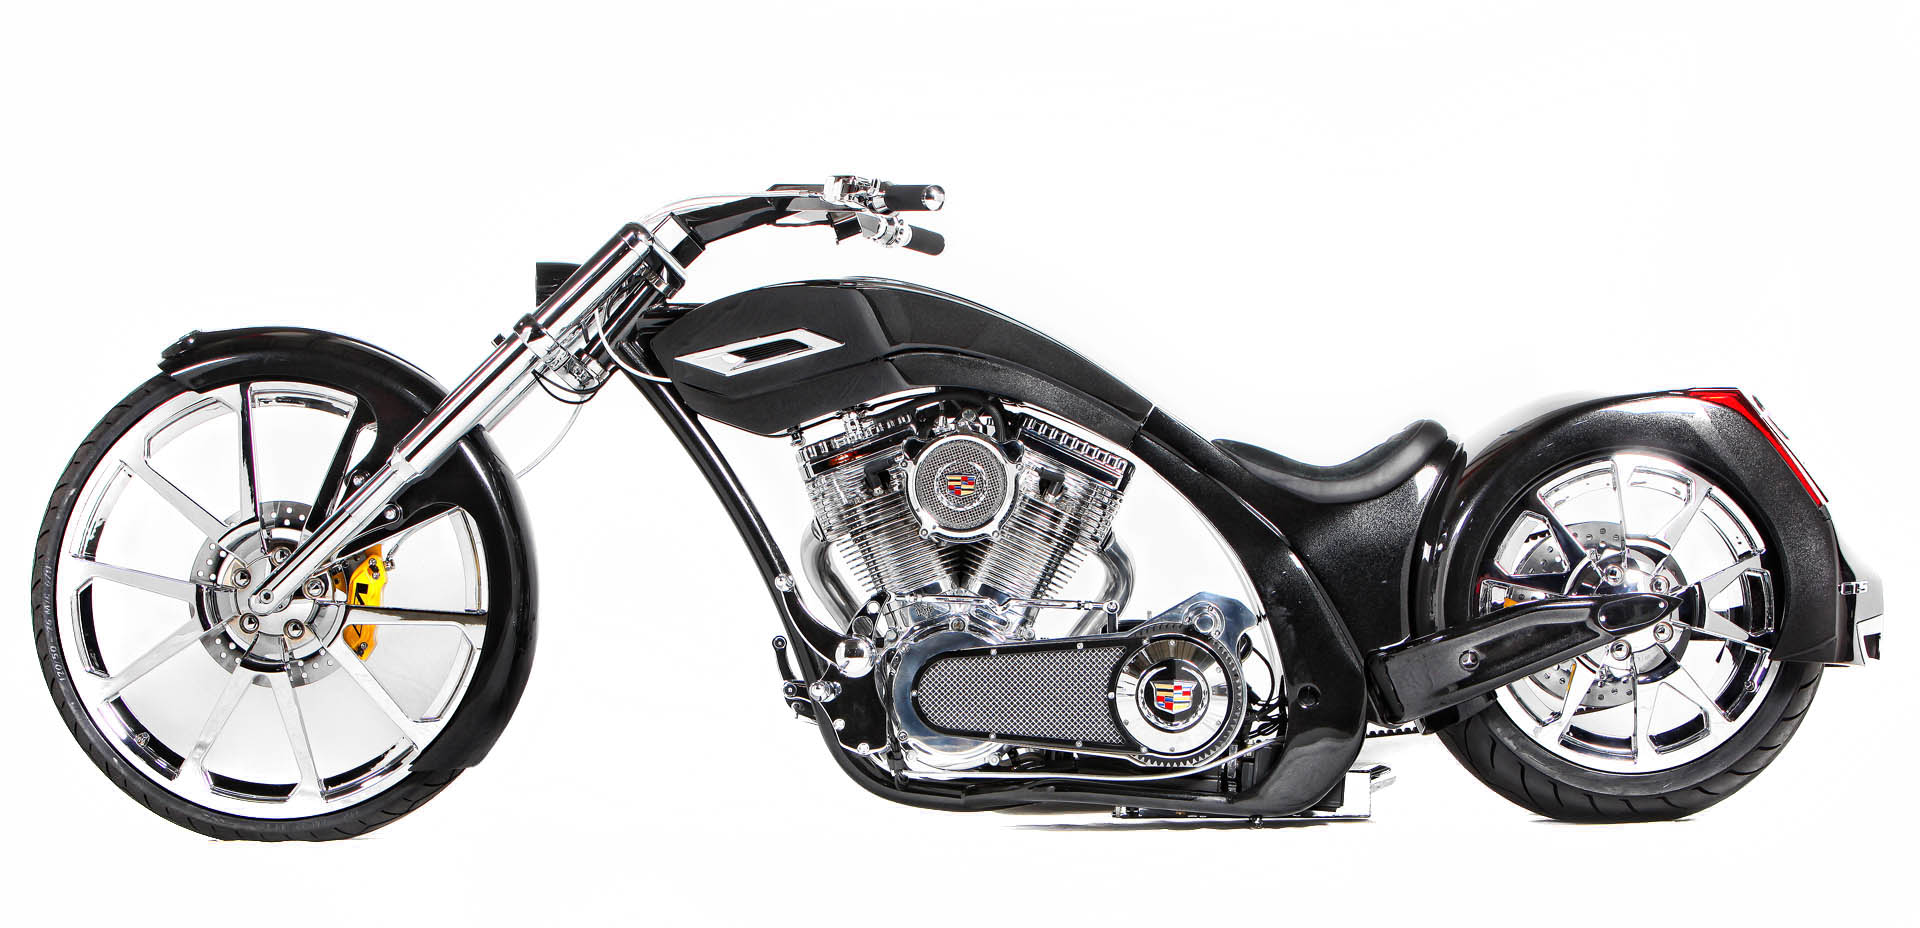 Paul Jr Cadillac Bike